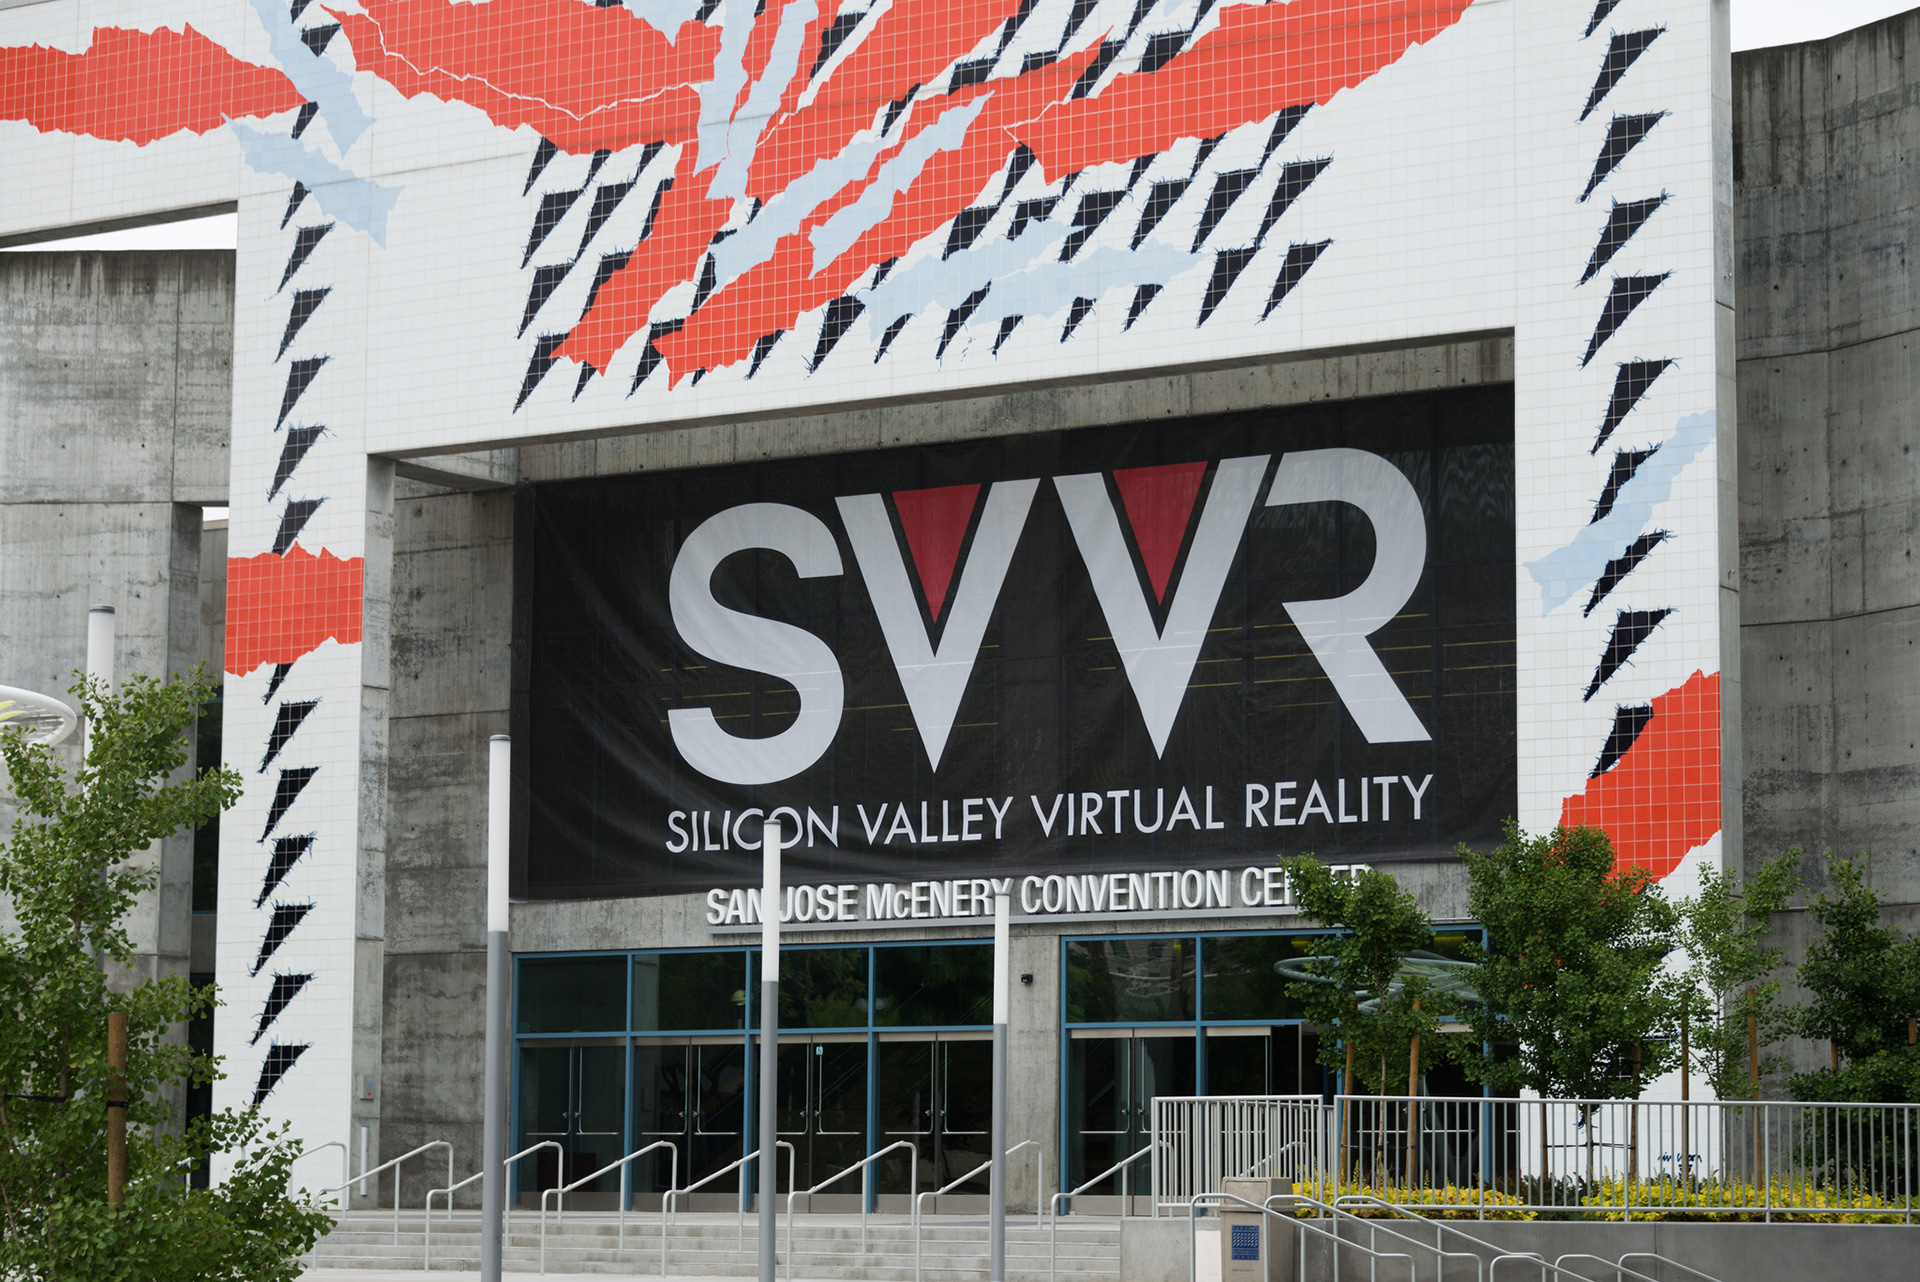 Svvr Expo 2016 Is Coming April 27–29, Save $100 On Early Throughout San Jose Convention Calender